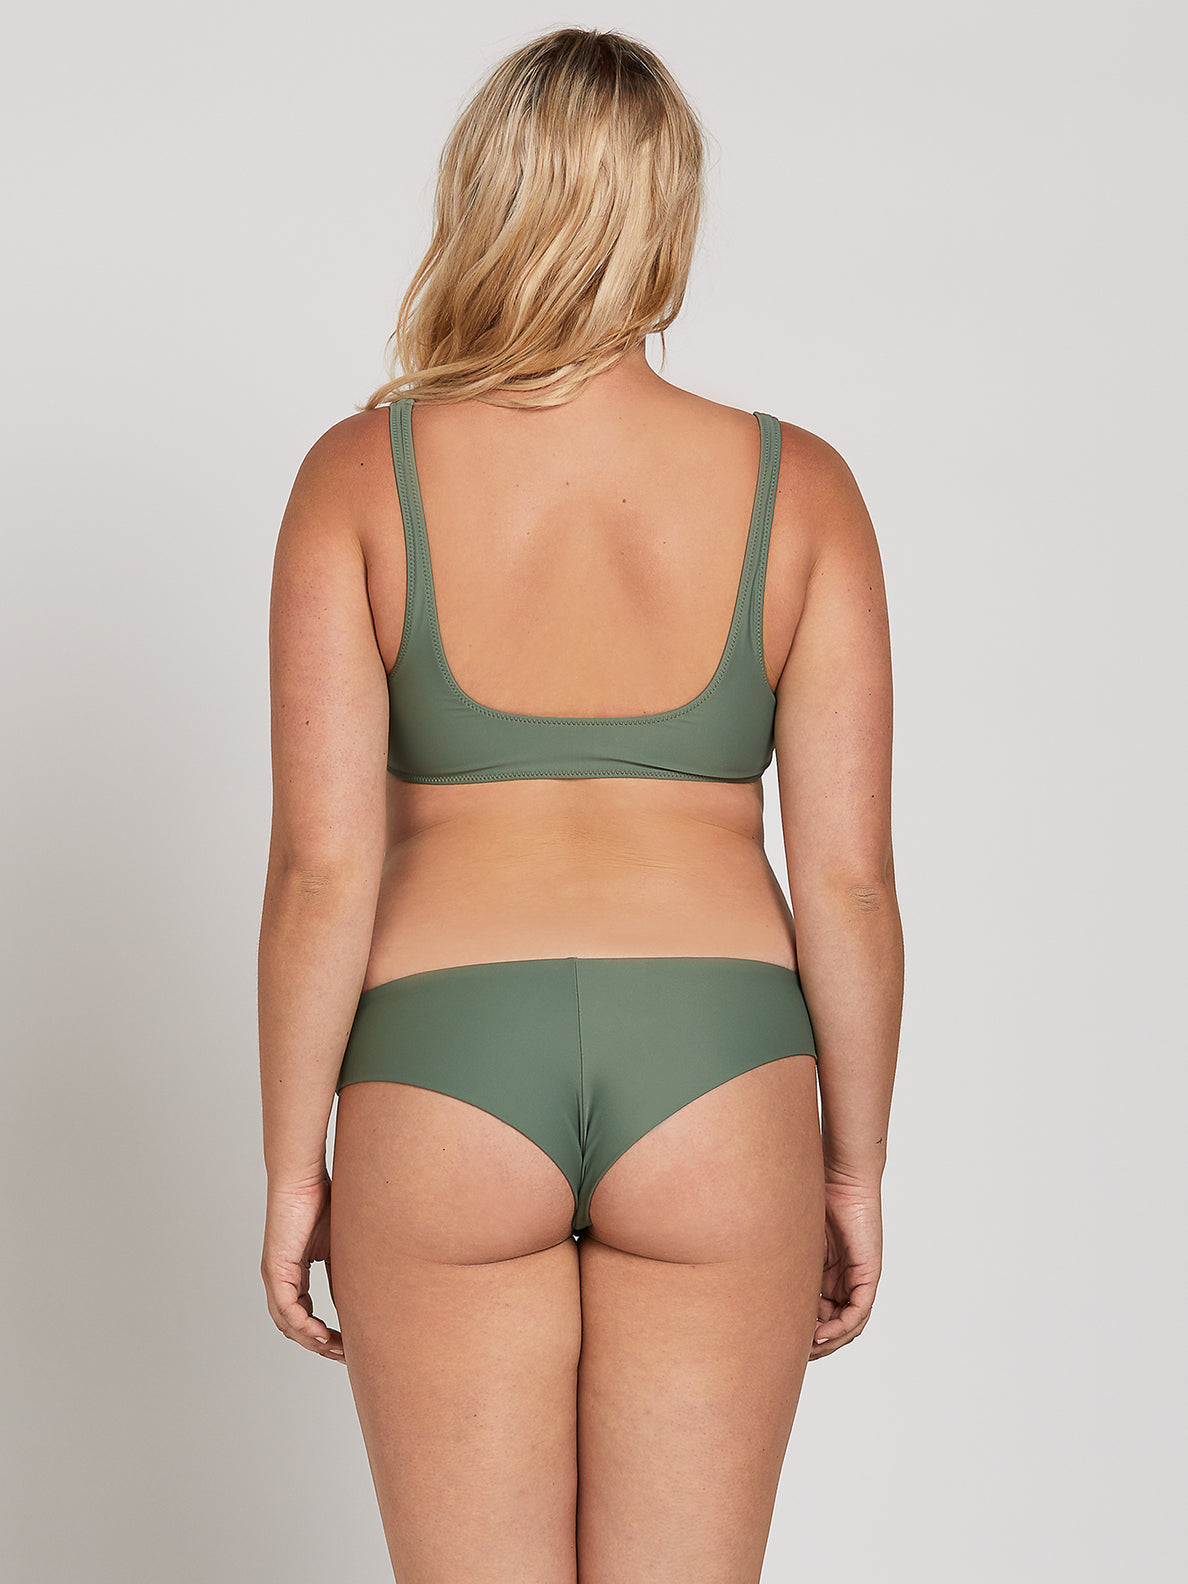 Simply Solid Cheeky Bottoms - Dark Green (O2141900_DKG) [23]